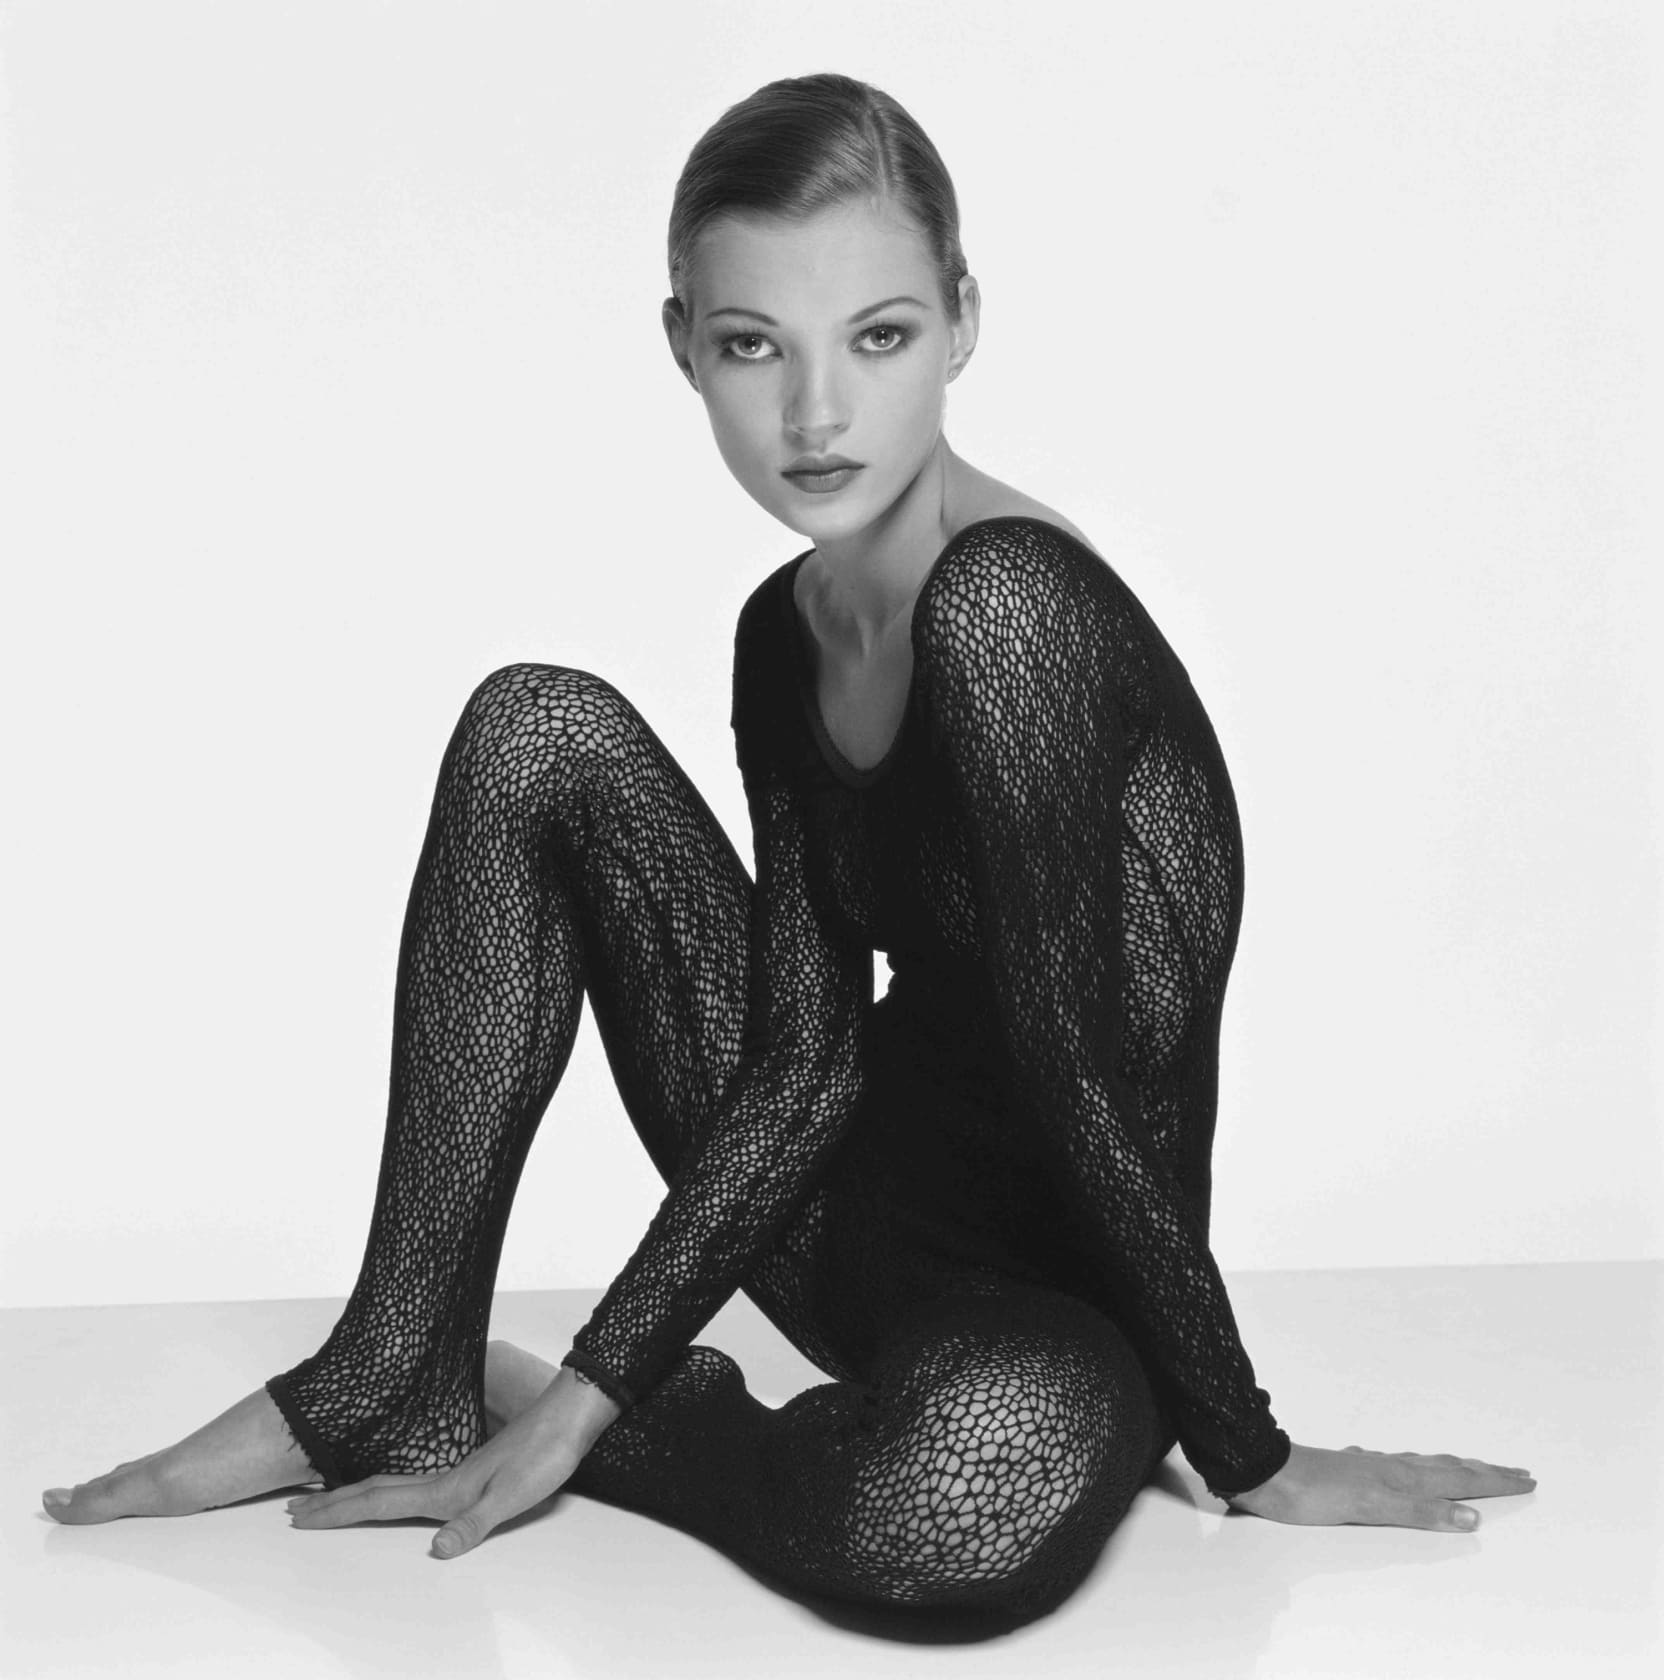 Terry O'Neill Kate Moss Lifetime Gelatin Silver Print *available in other mediums & editions